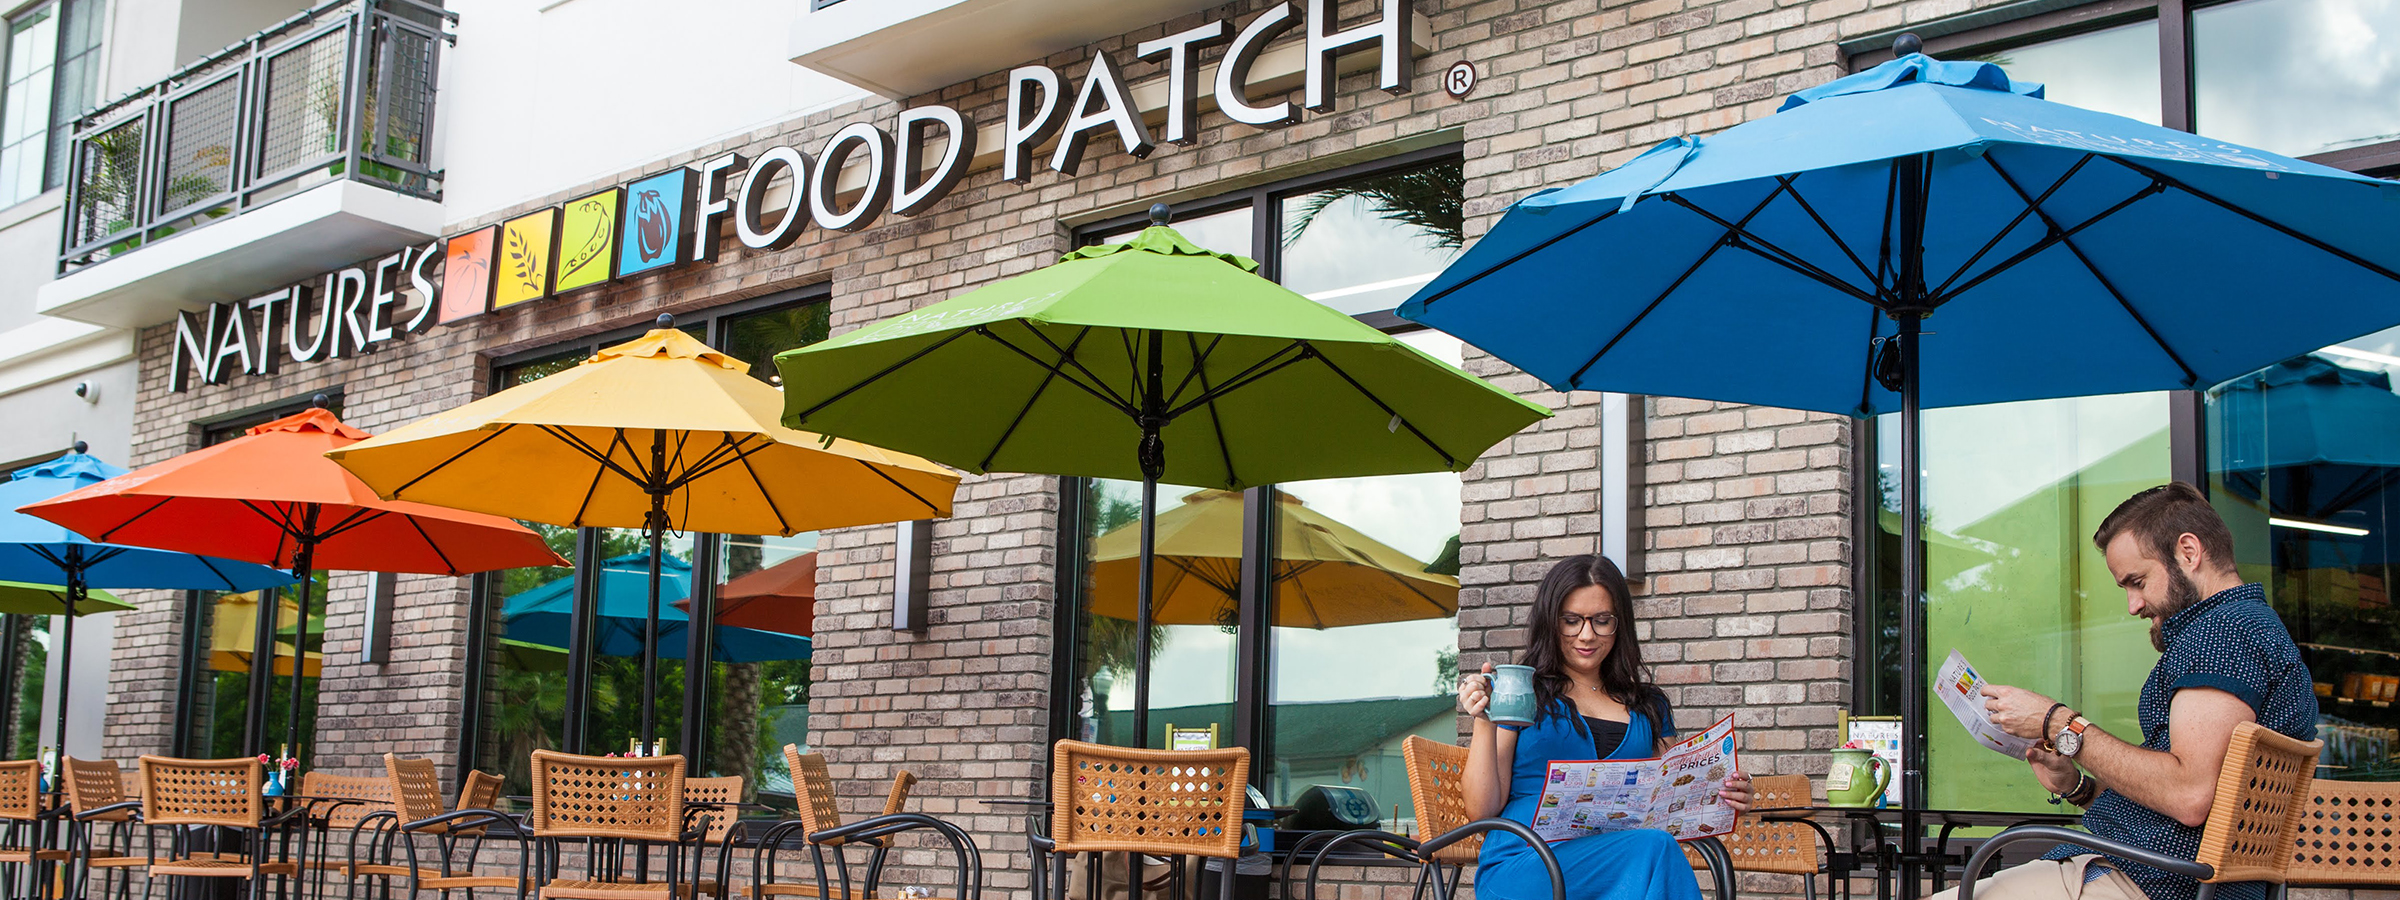 Our Story Blog - Nature's Food Patch with two people sitting outside under colorful umbrellas drinking coffee